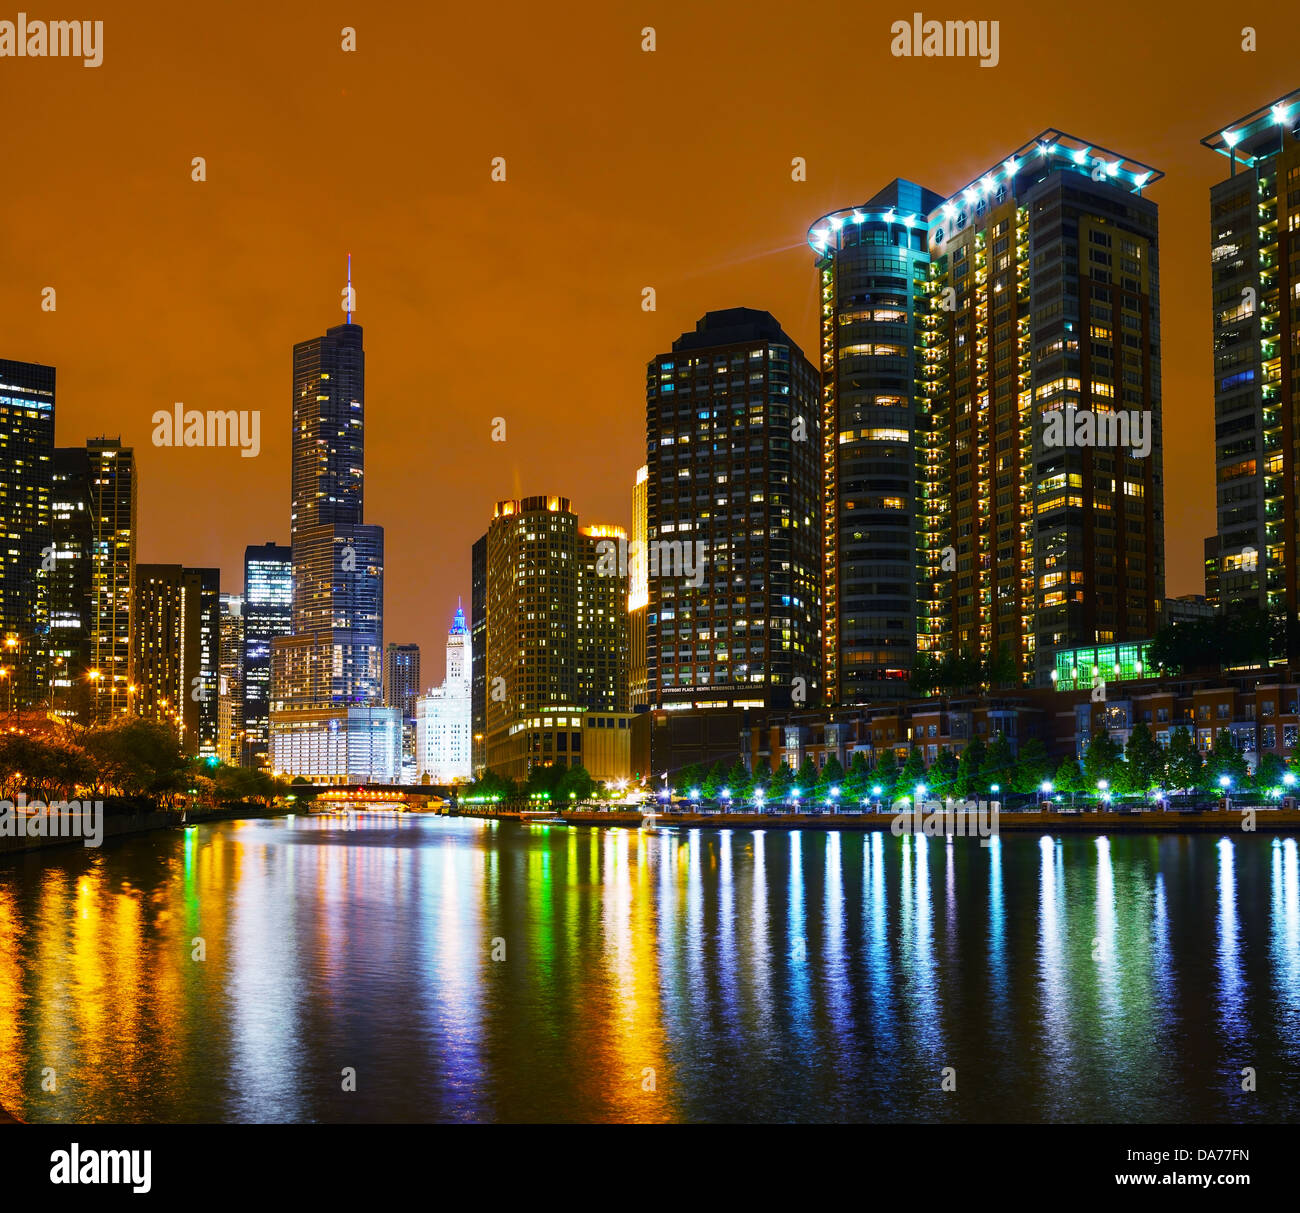 Trump International Hotel and Tower in Chicago, Illinois - Stock Image